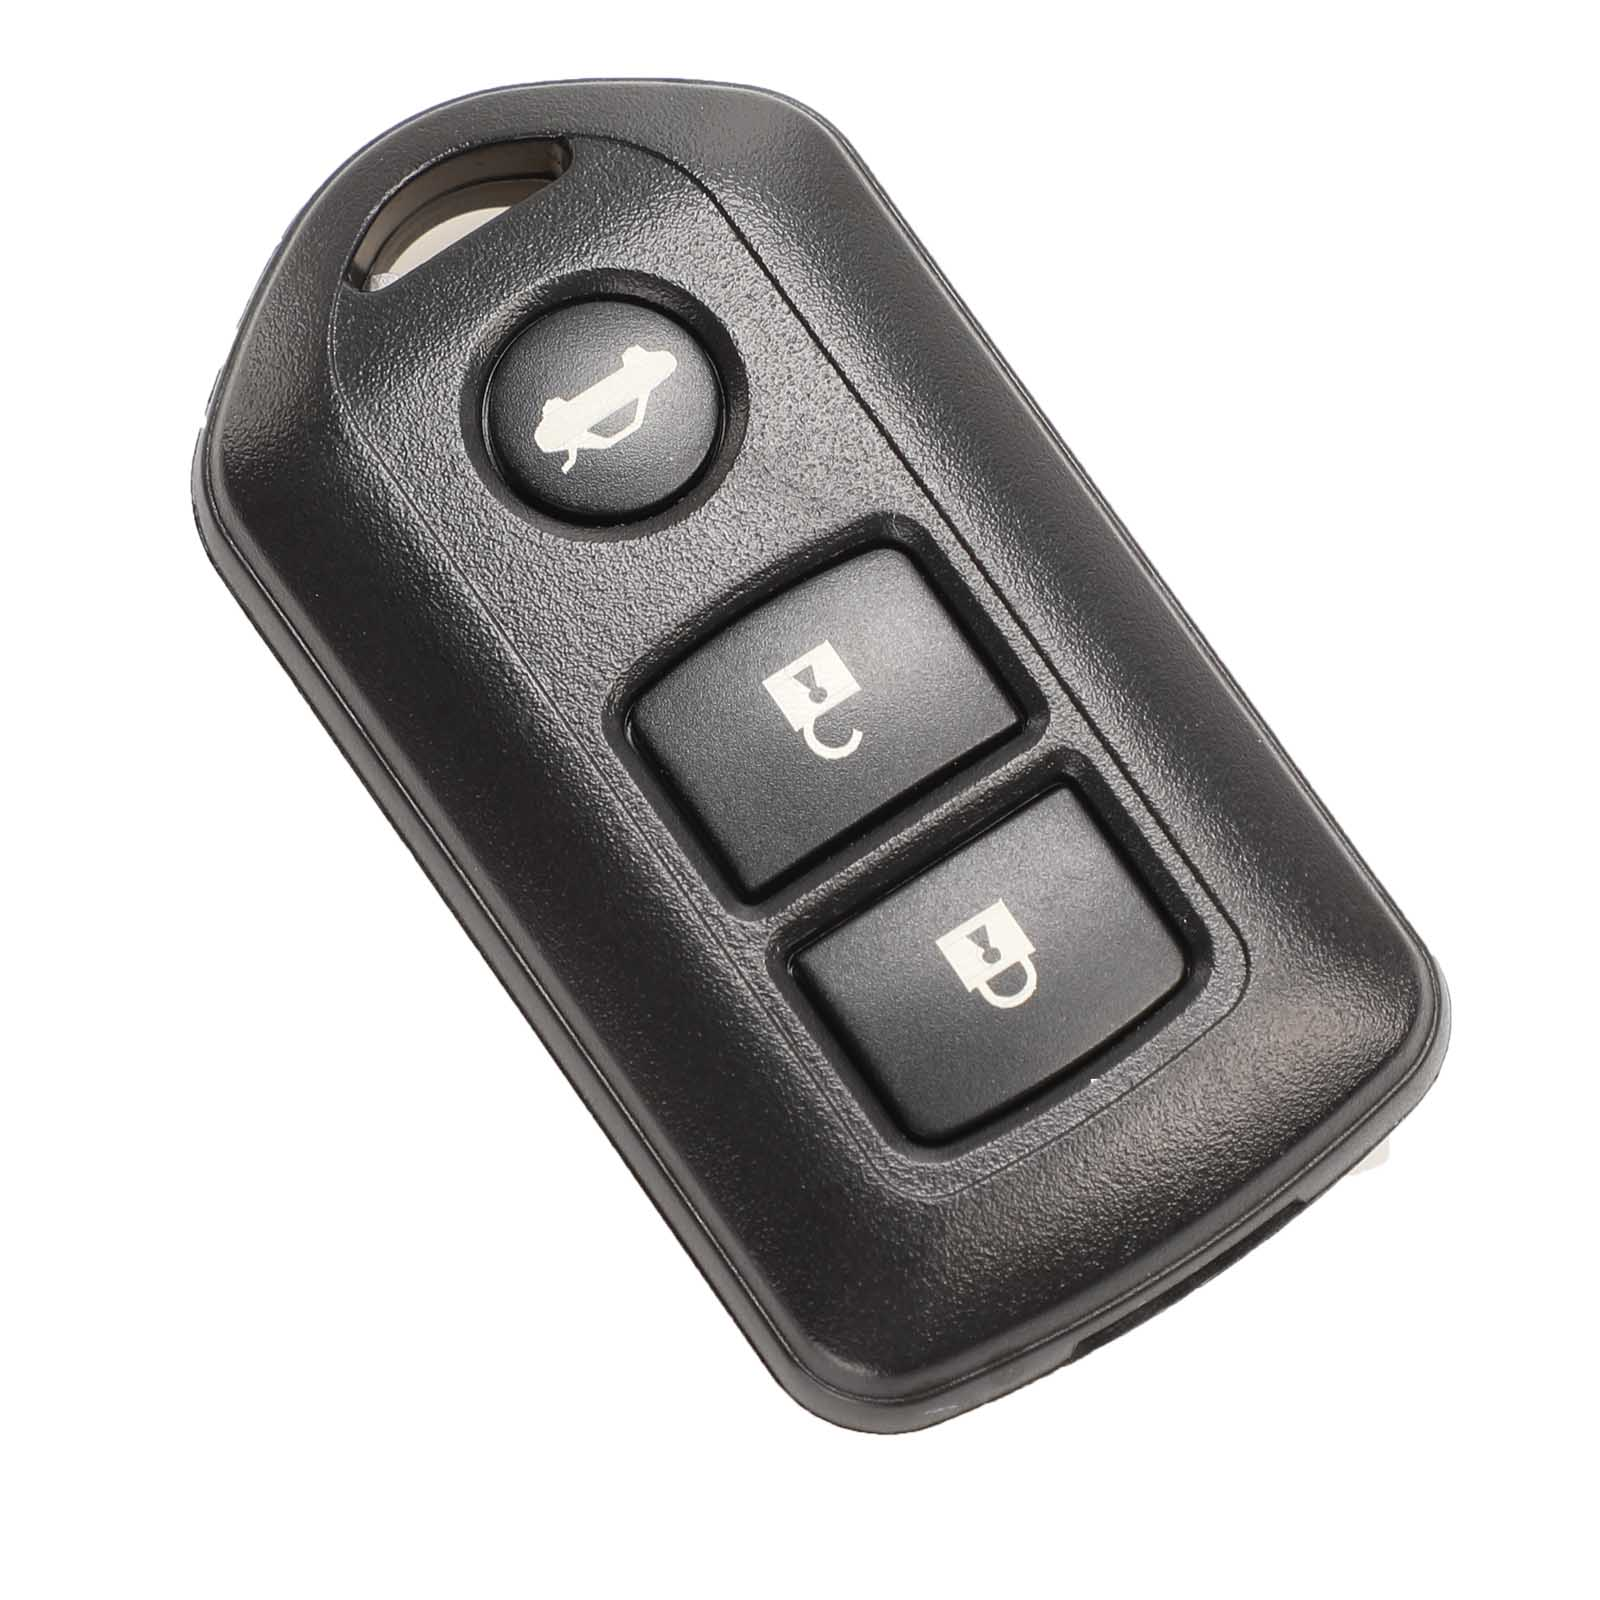 Kutery  2/3 Buttons Replacement Remote Car Key Shell Case Fob For TOYOTA Prado RAV Vios Yaris